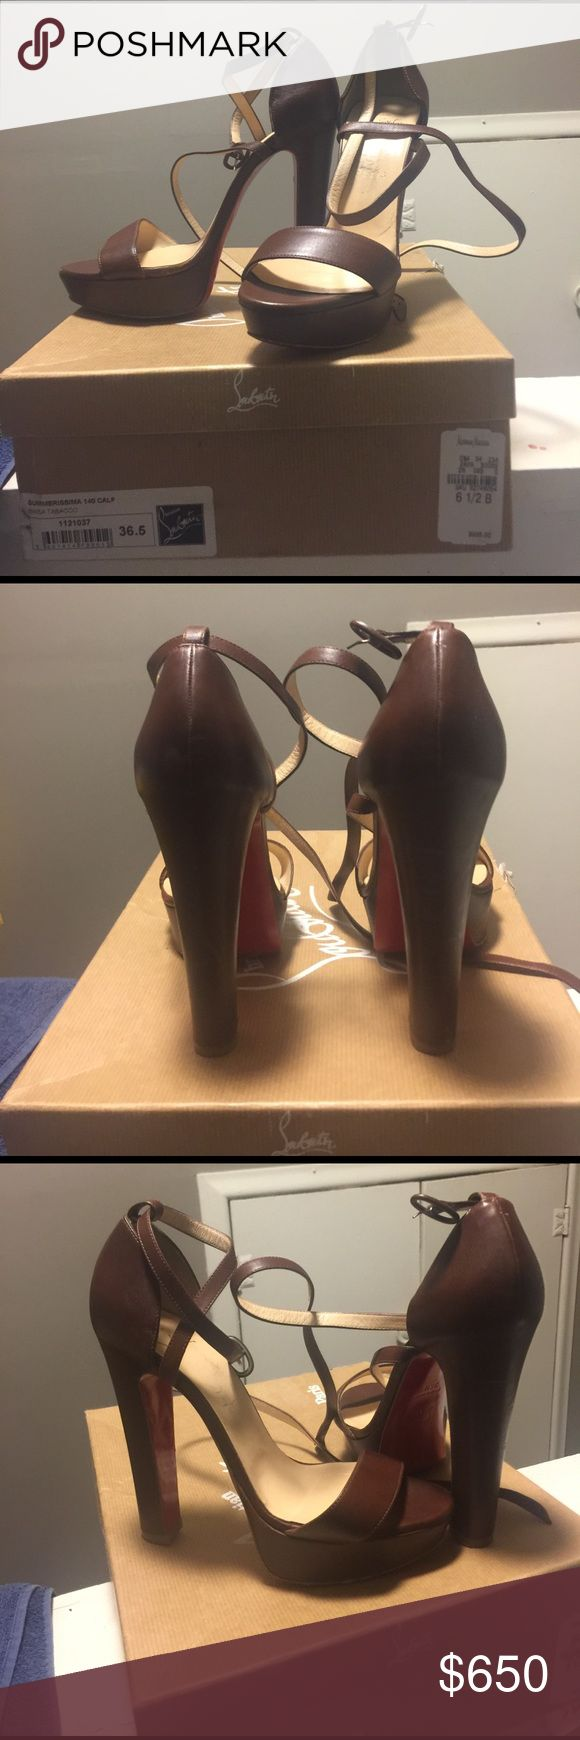 Women's Christian Louboutin strap up heels Women Louboutin strap up Summerissima 140 calf heels comes with box, dust bag, and extra heel taps Christian Louboutin Shoes Heels